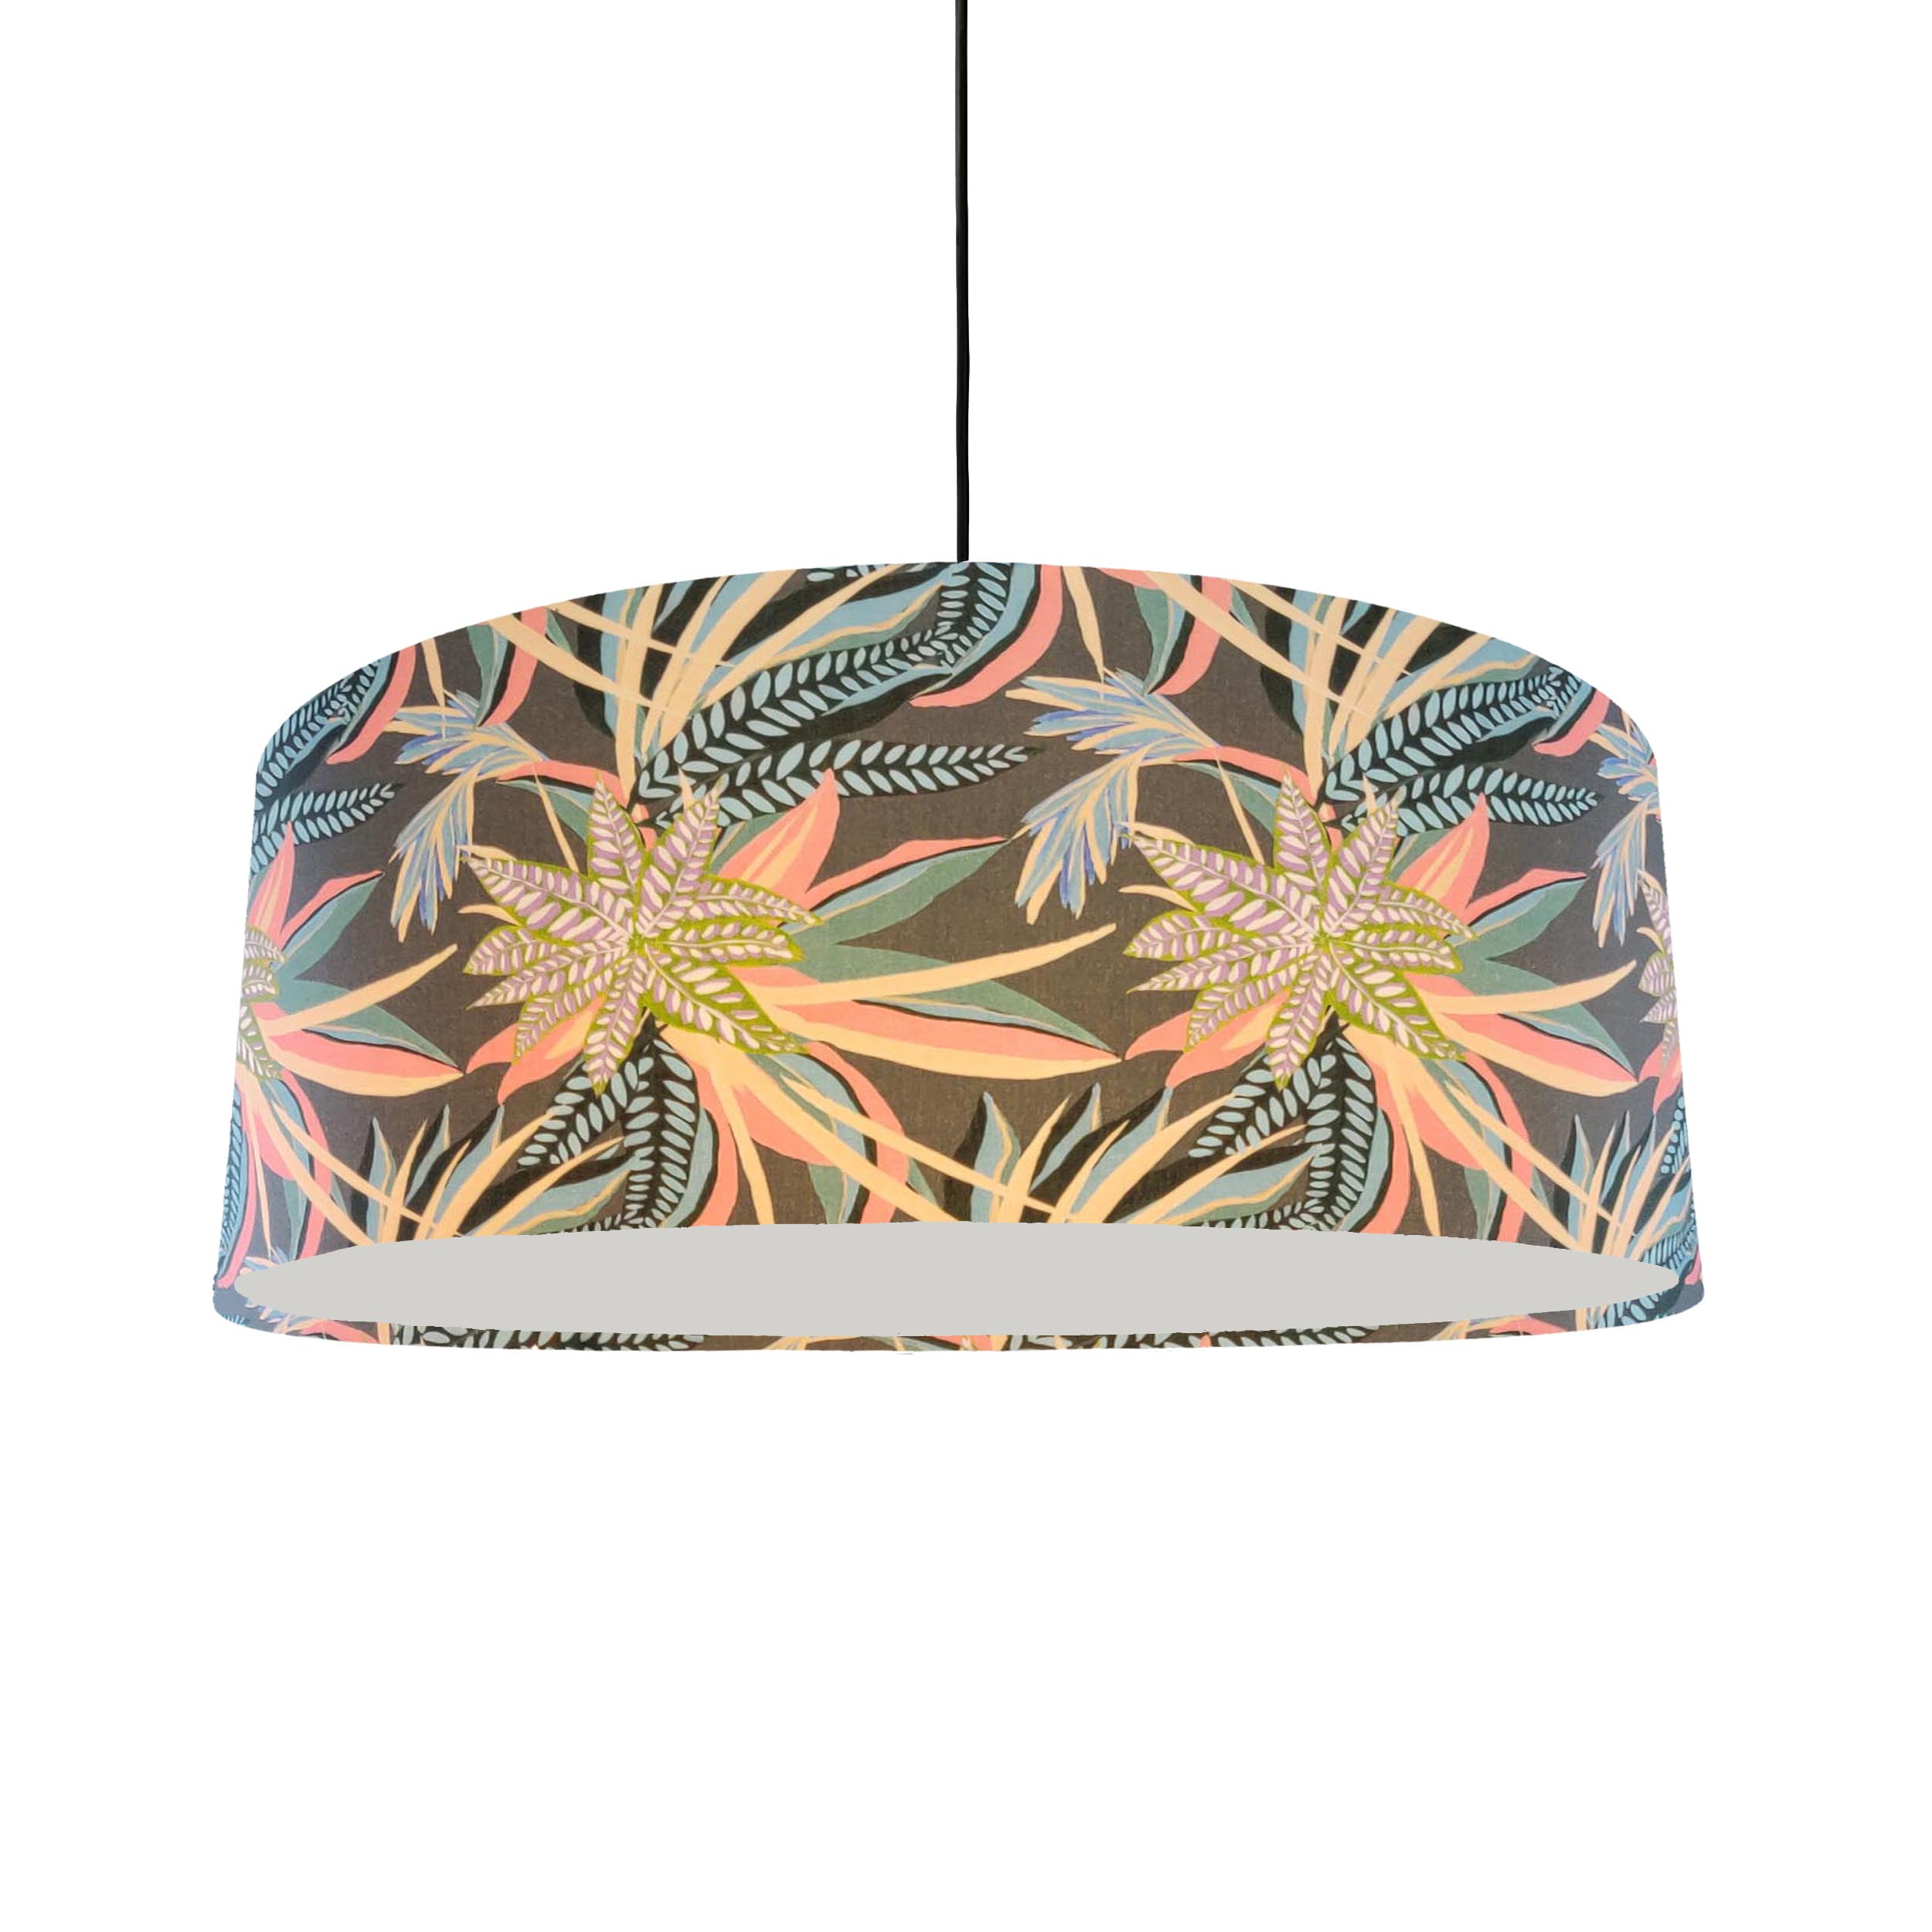 Extra Large Teal Bloom Lampshade in a Botanical Print